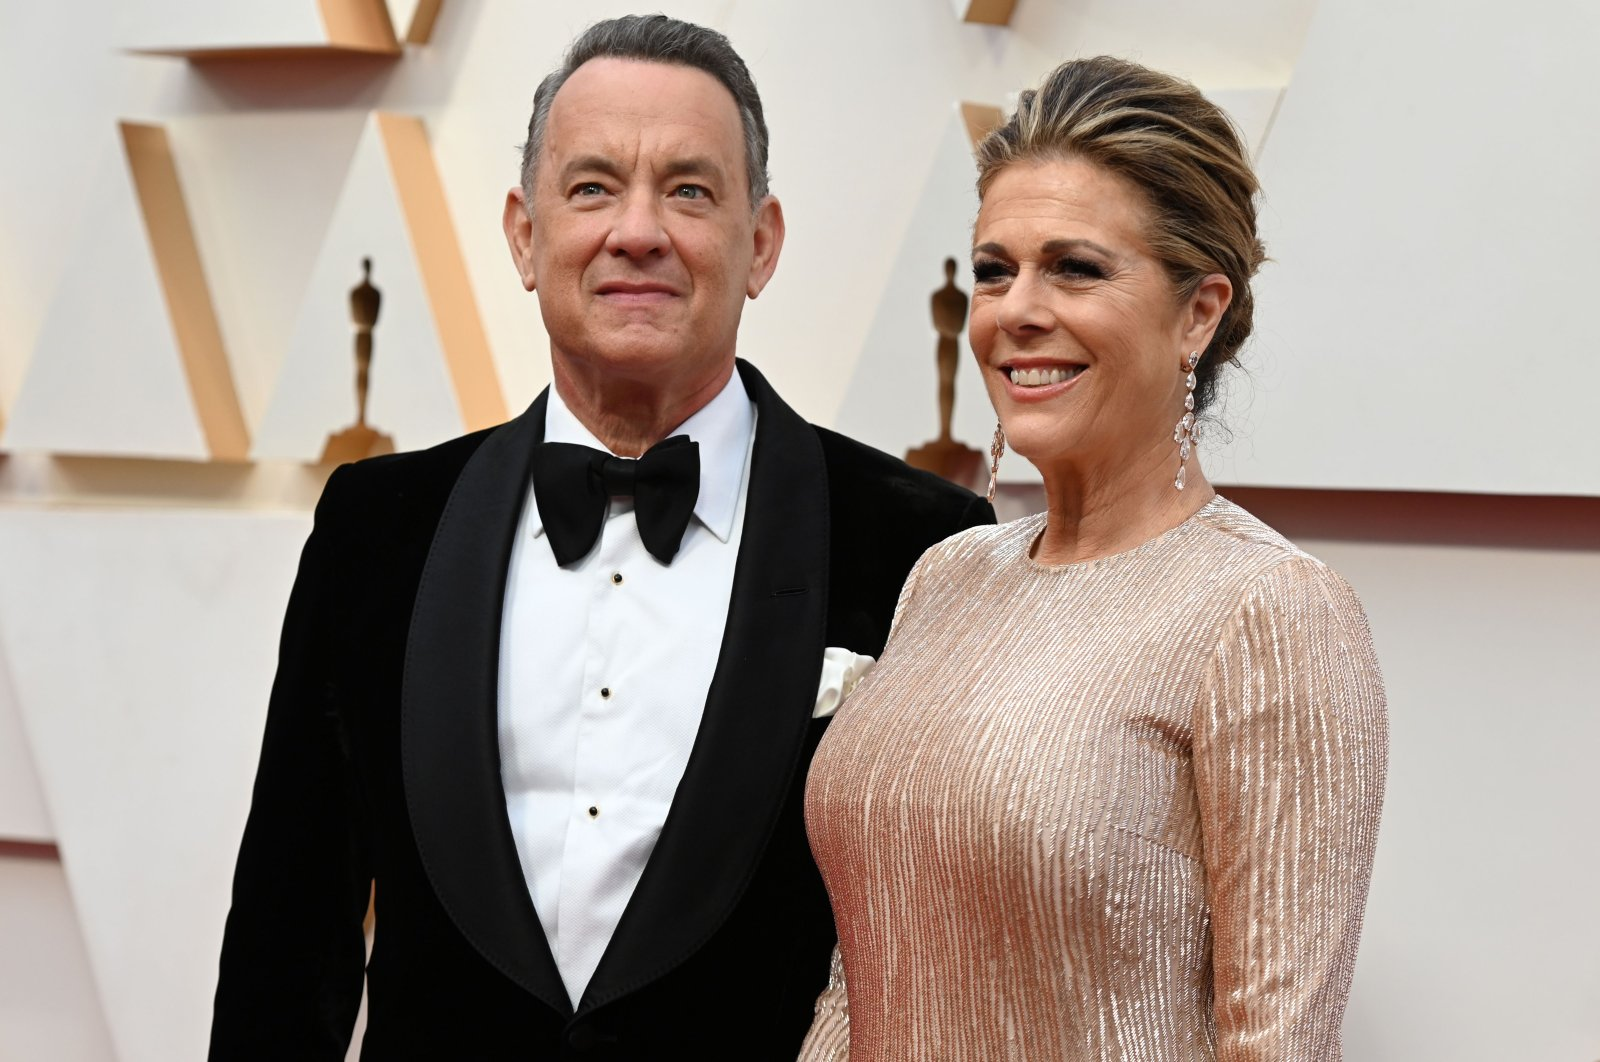 In this file photo taken on Feb. 9, 2020, U.S. actor Tom Hanks and wife Rita Wilson arrive for the 92nd Oscars at the Dolby Theatre in Hollywood, California. (AFP Photo)